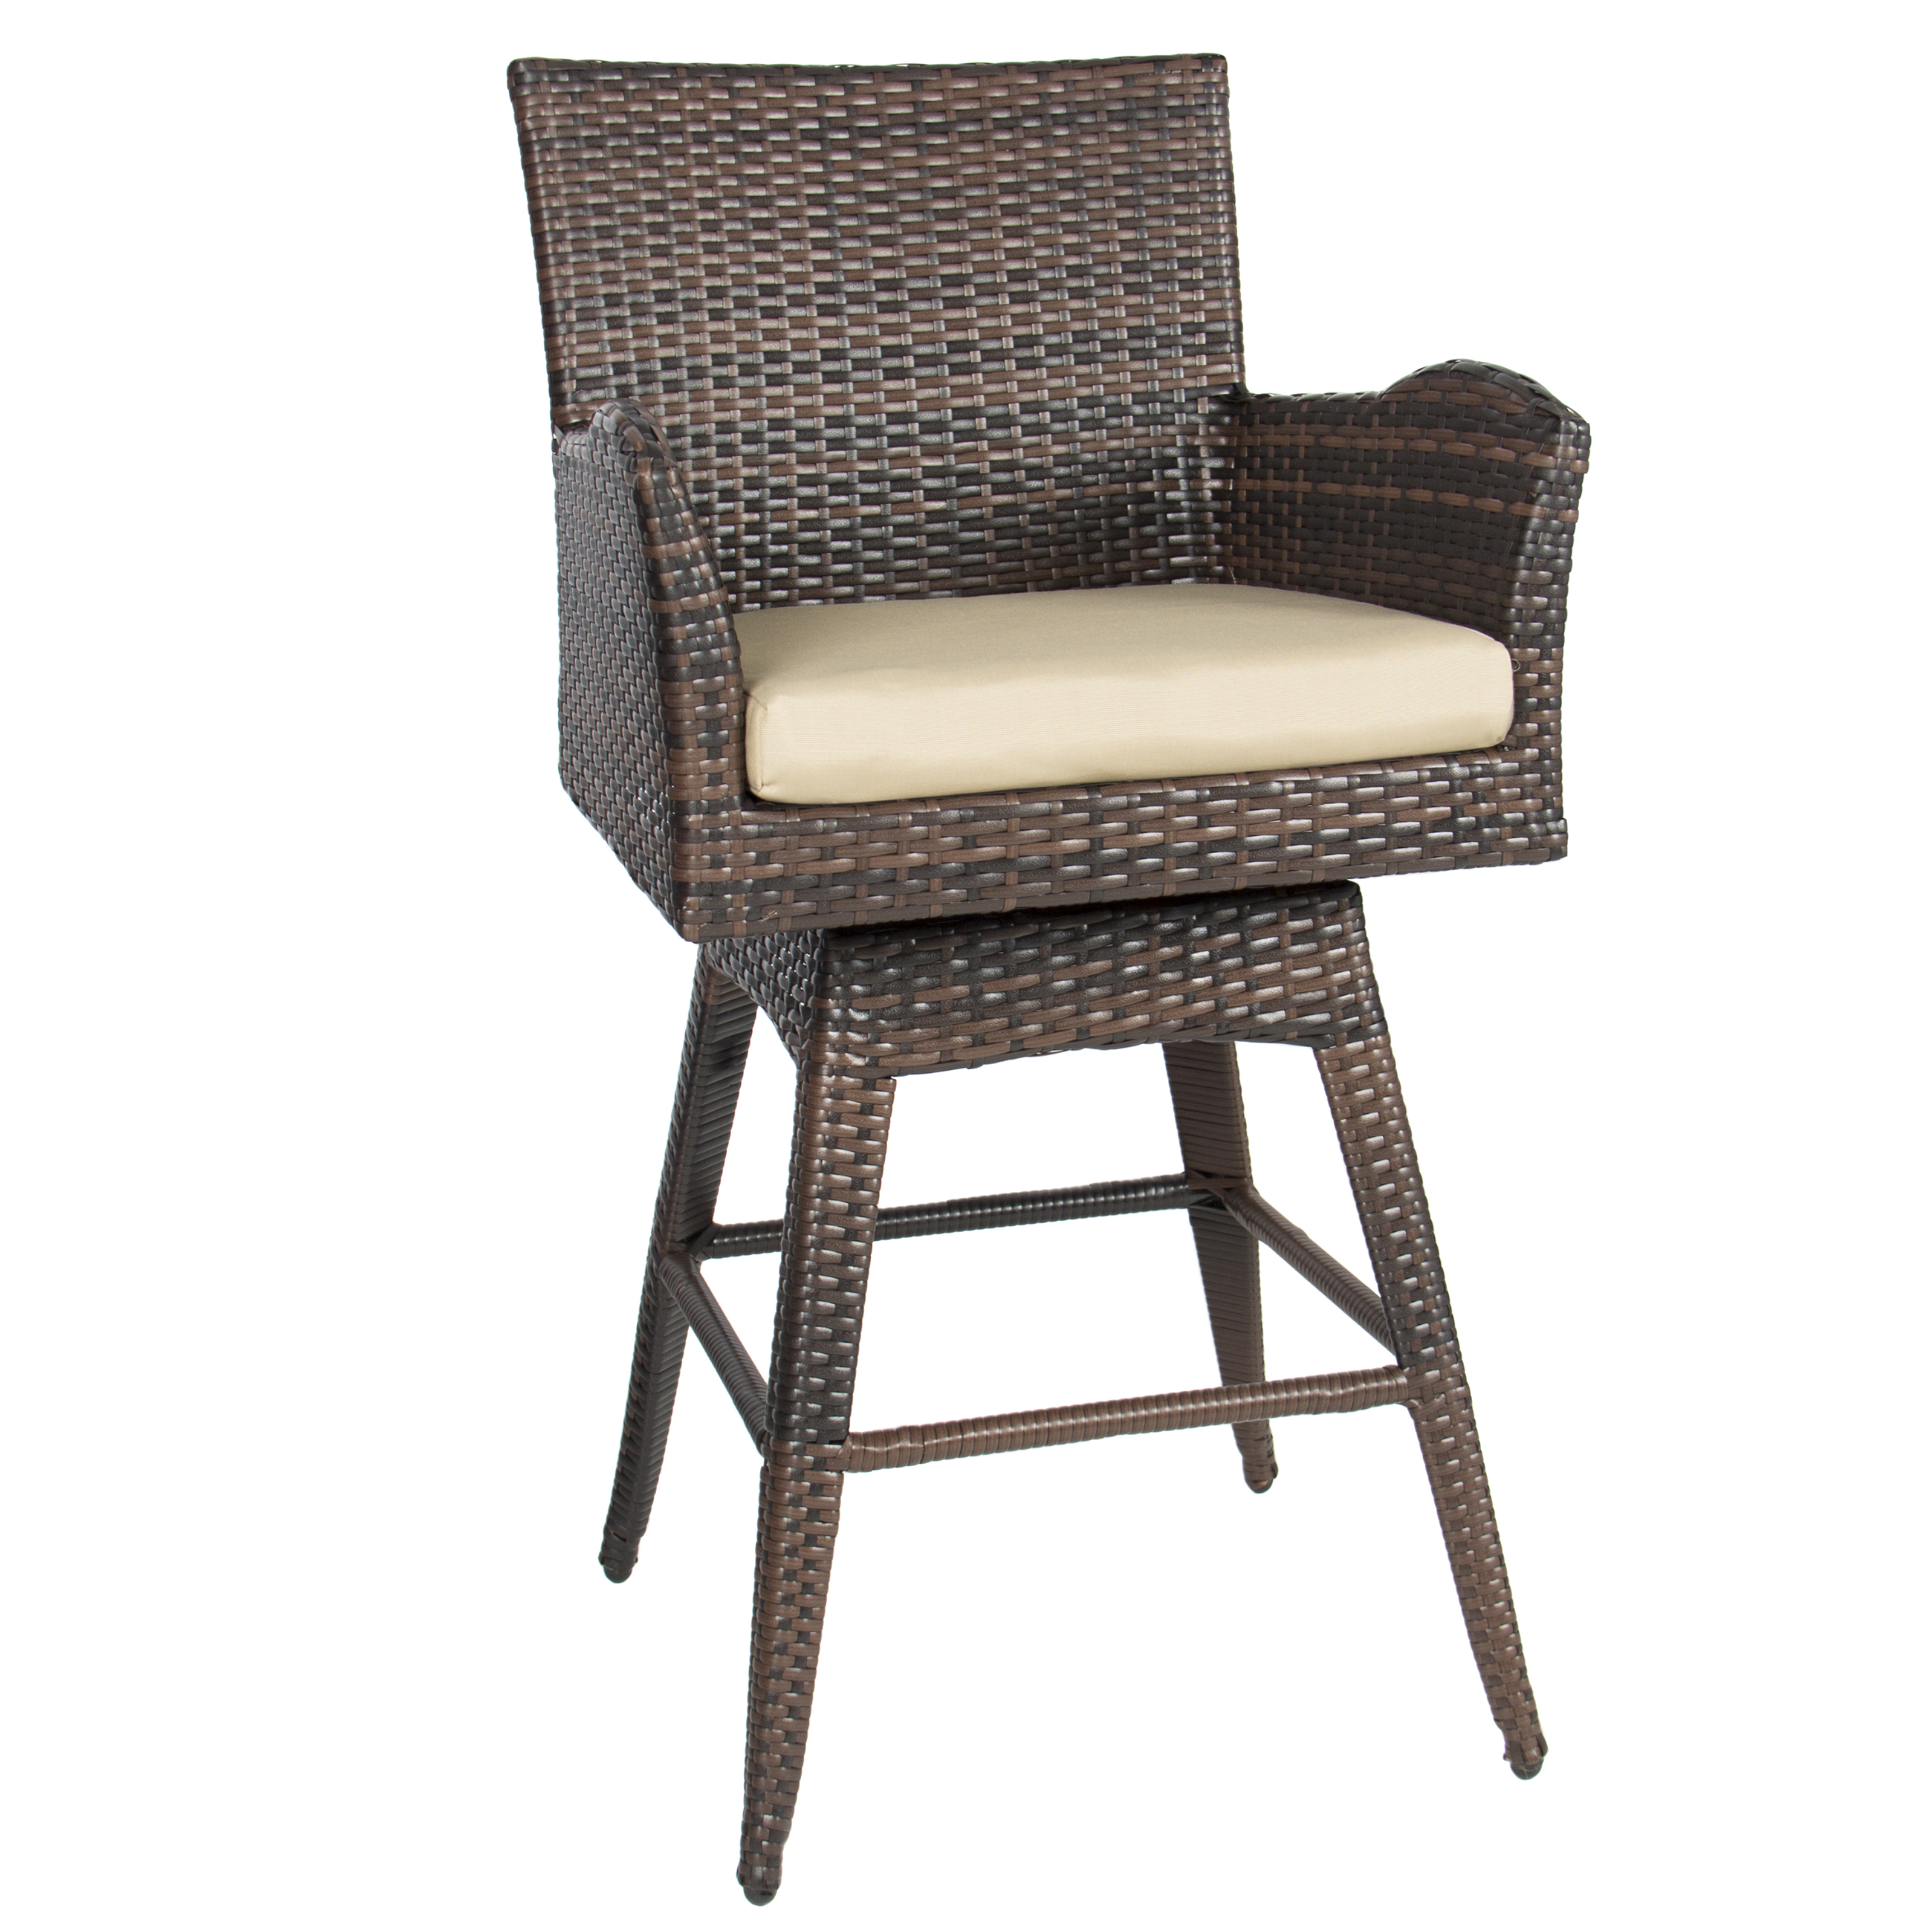 Ordinaire Best Choice Products Outdoor Brown Wicker Swivel Bar Stool W/ Cushion    Walmart.com